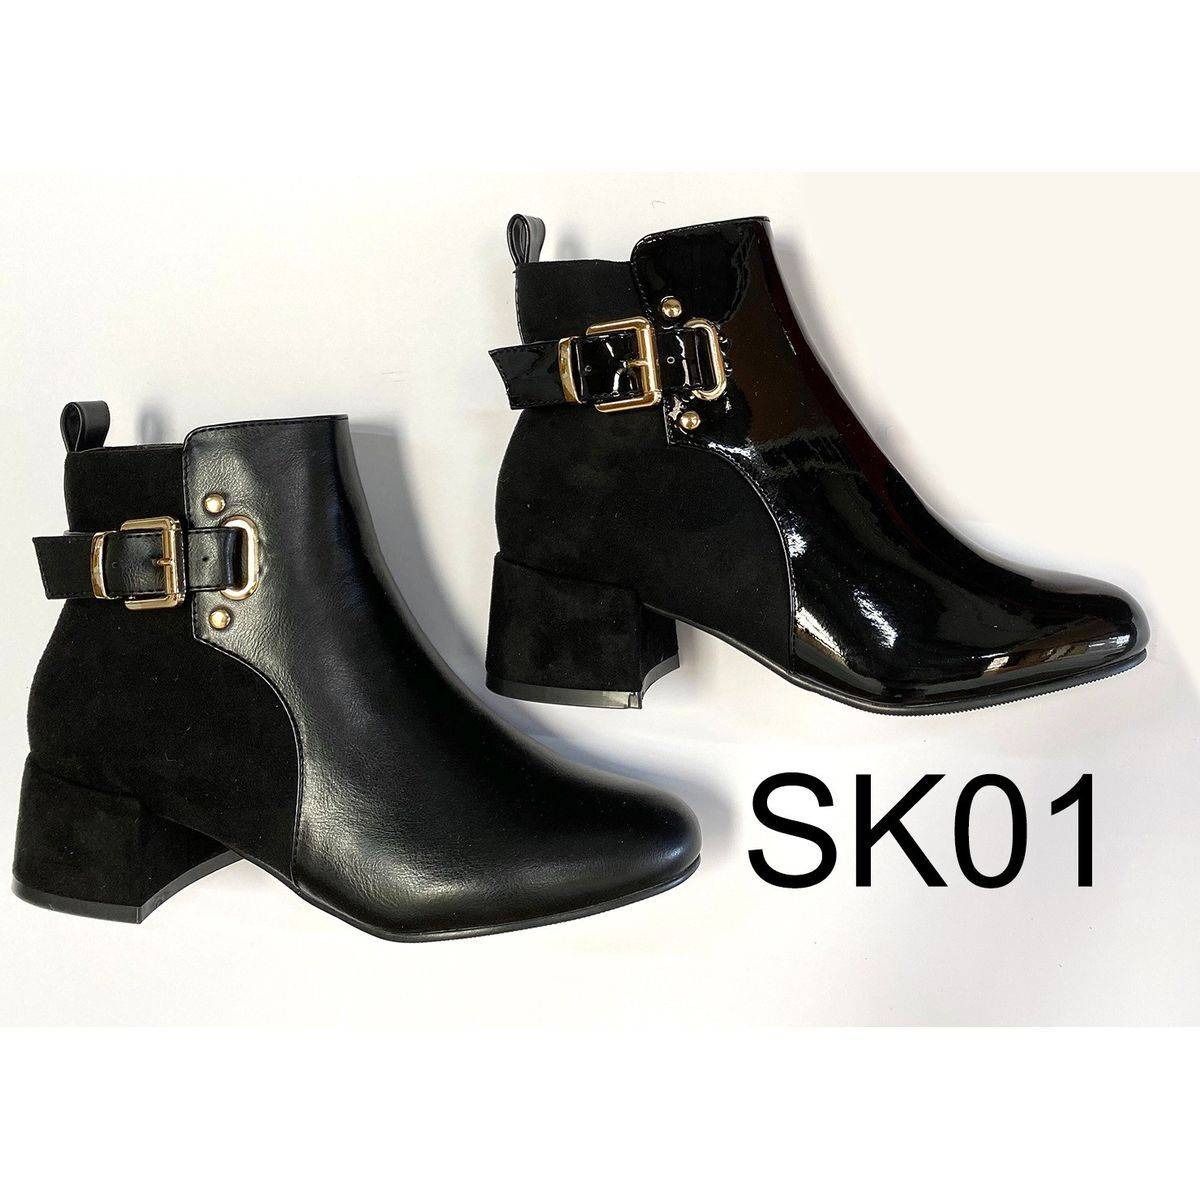 Buckle Ankle Boots Moyee